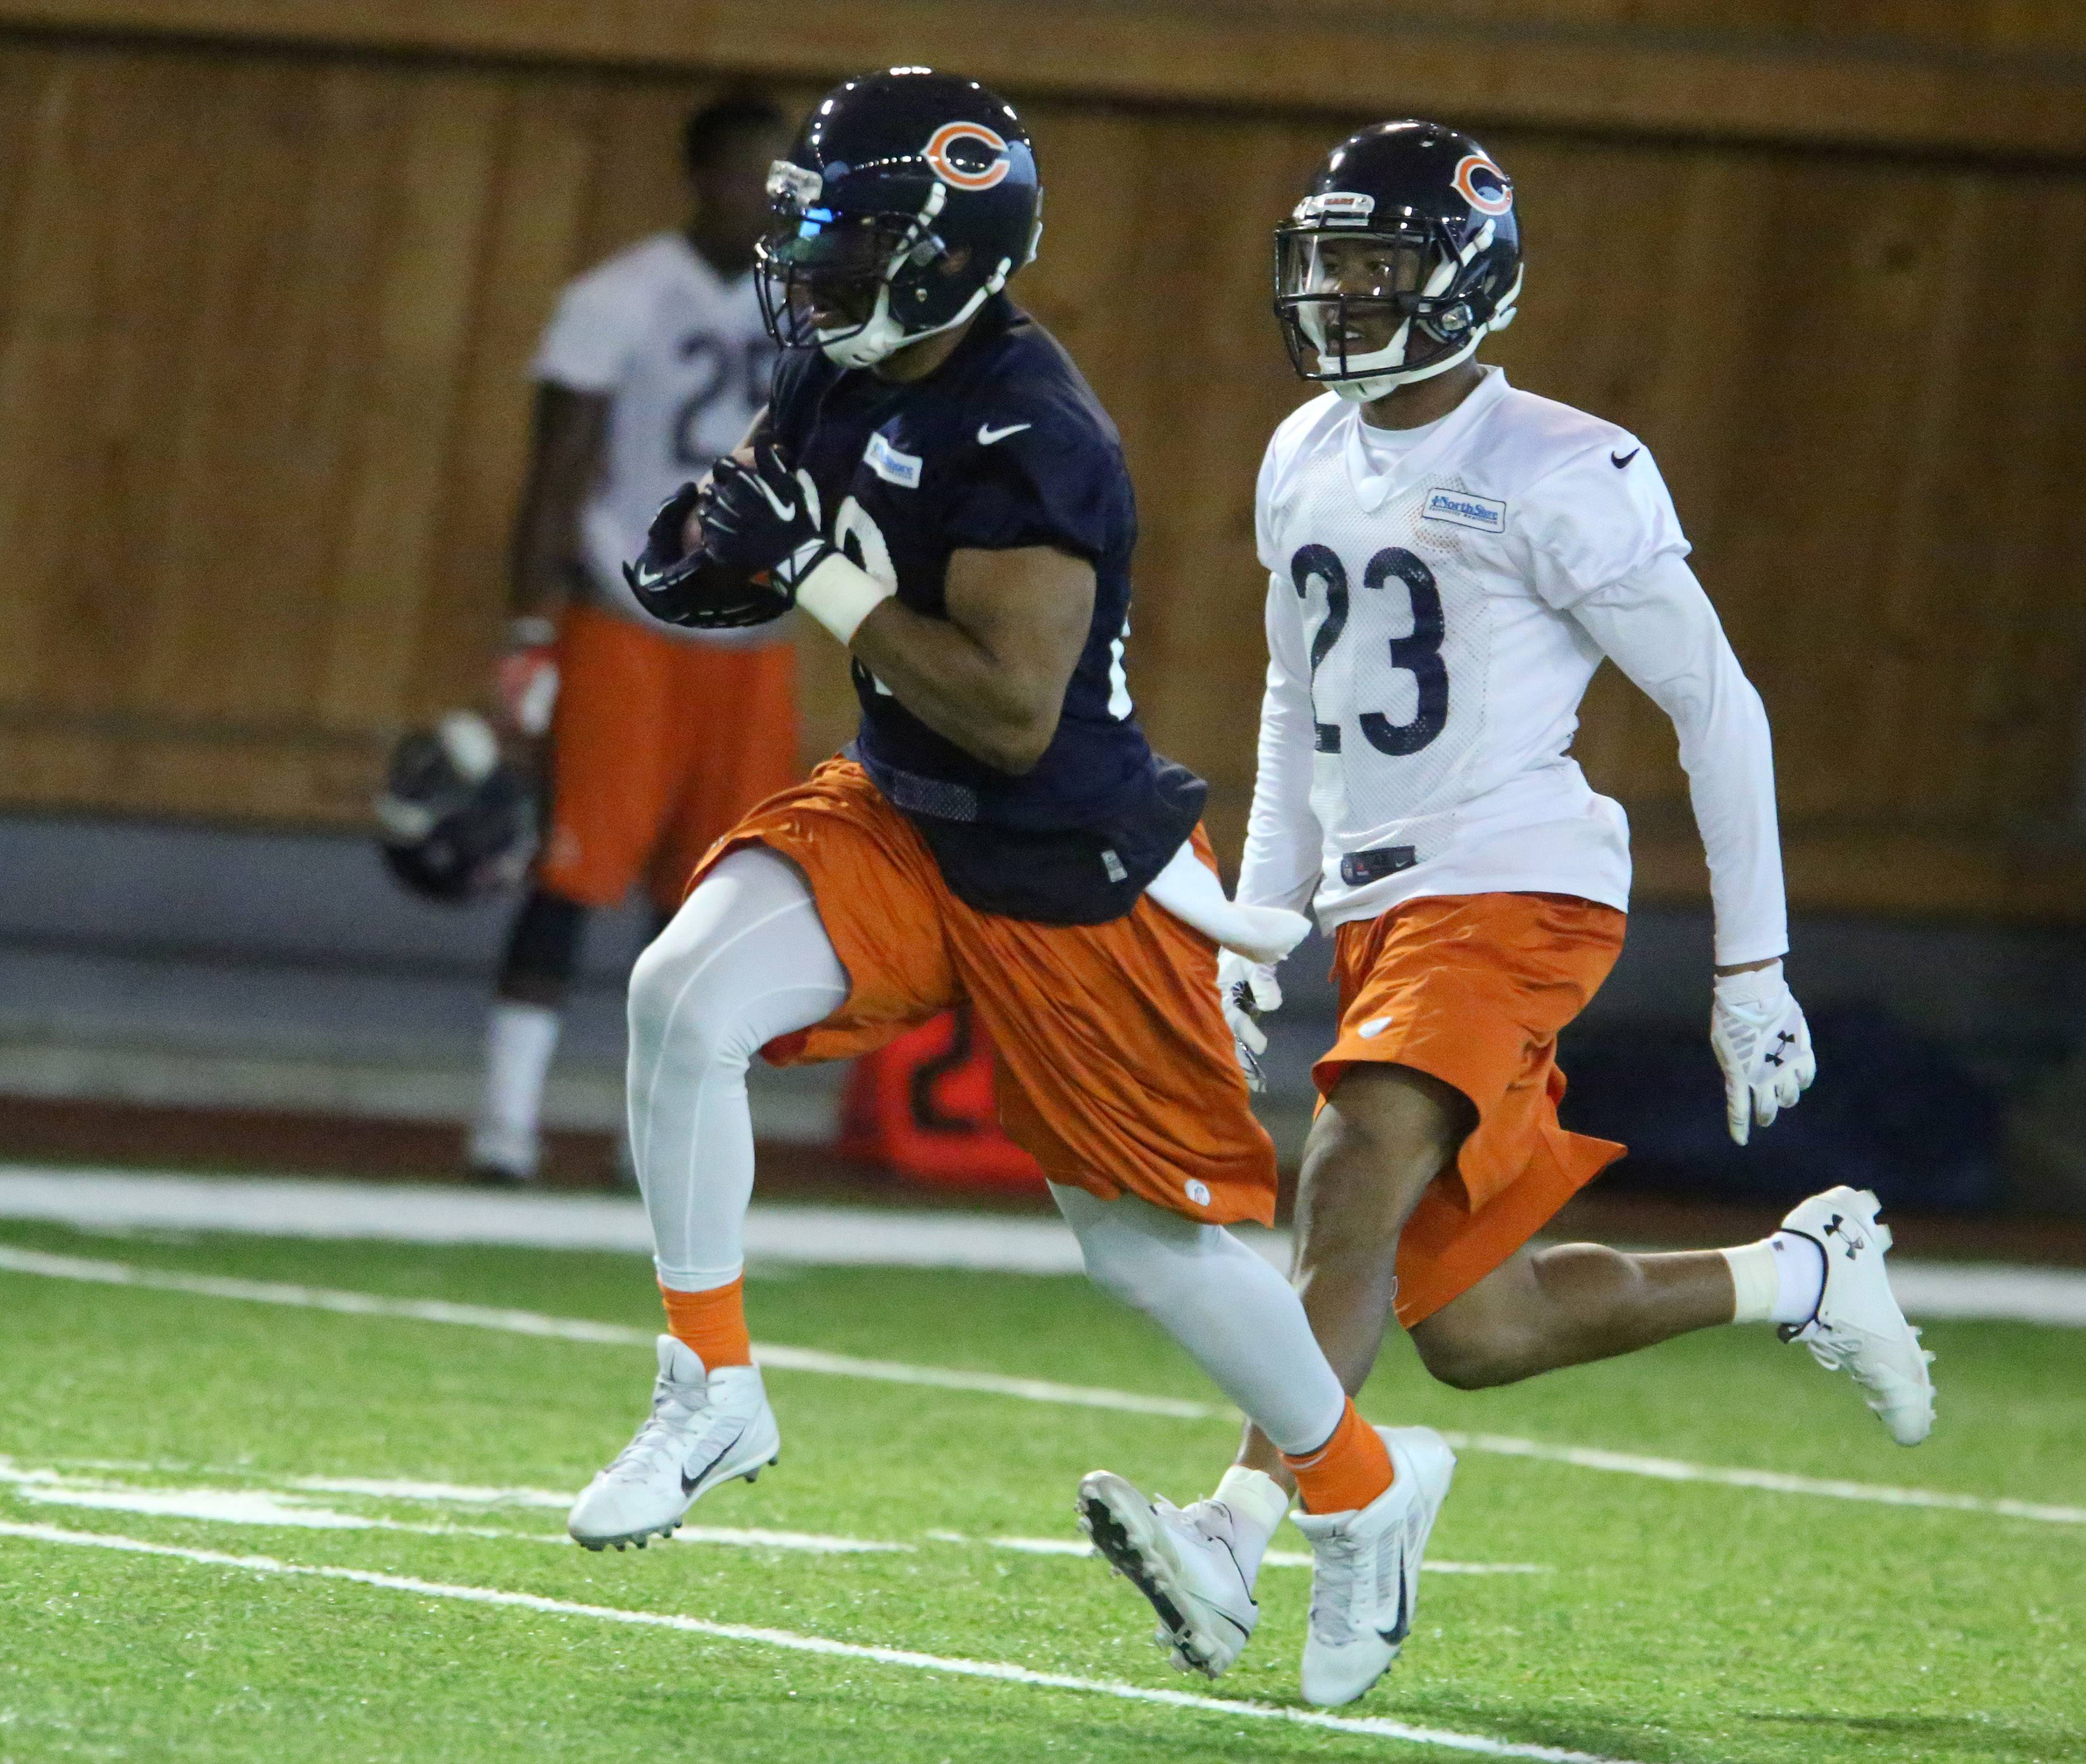 Defensive back Kyle Fuller chases down running back Matt Forte at Chicago Bears minicamp Wednesday at the Walter Payton Center in Lake Forest.